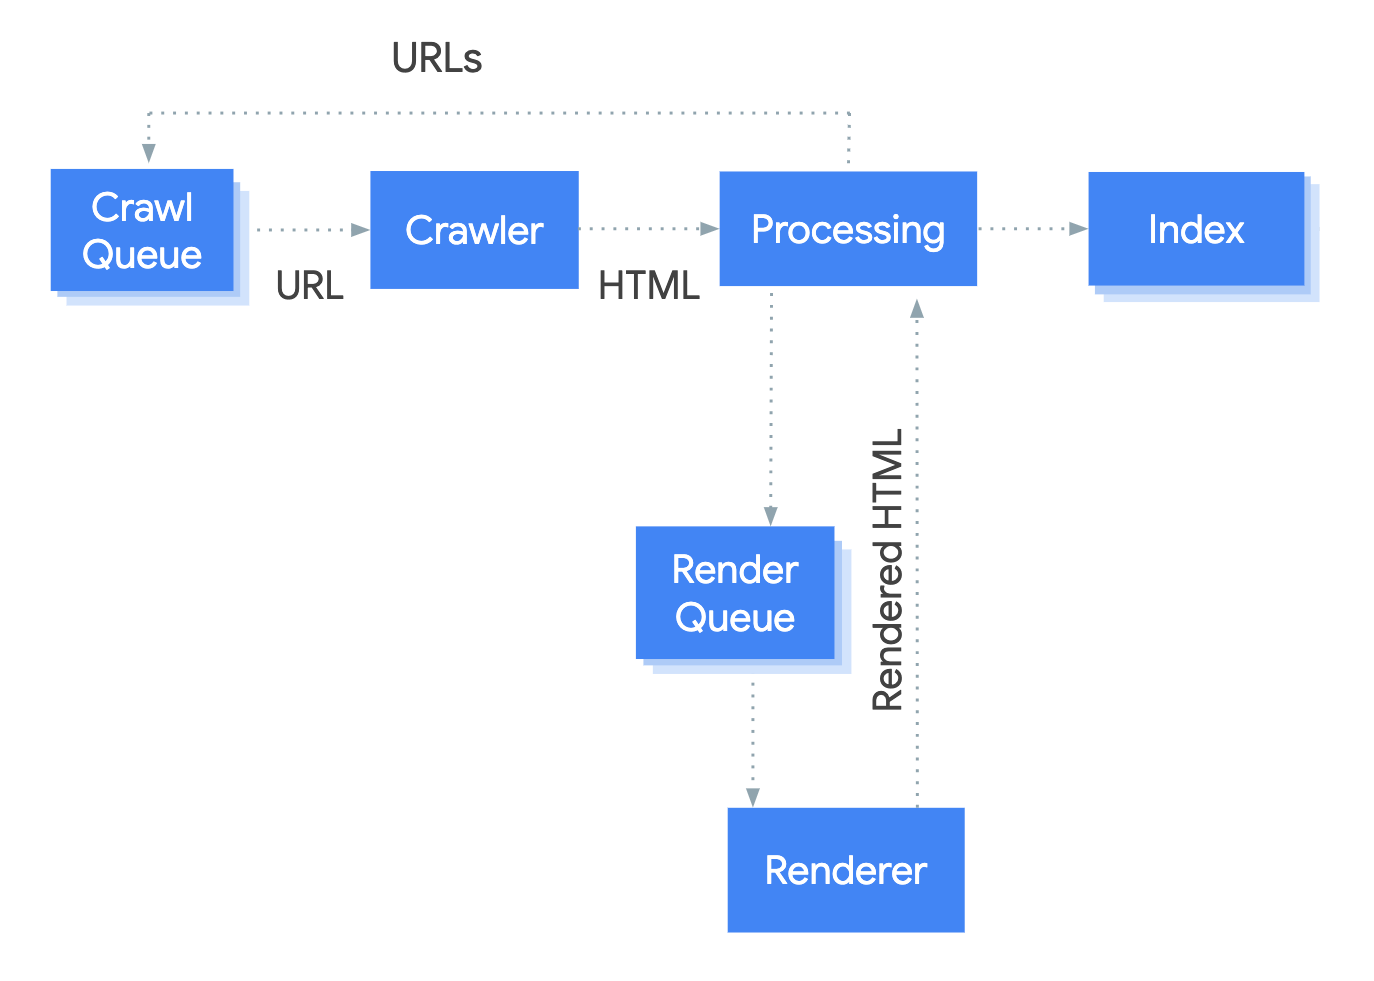 client-side rendering makes it more difficult for Google to crawl, render and index